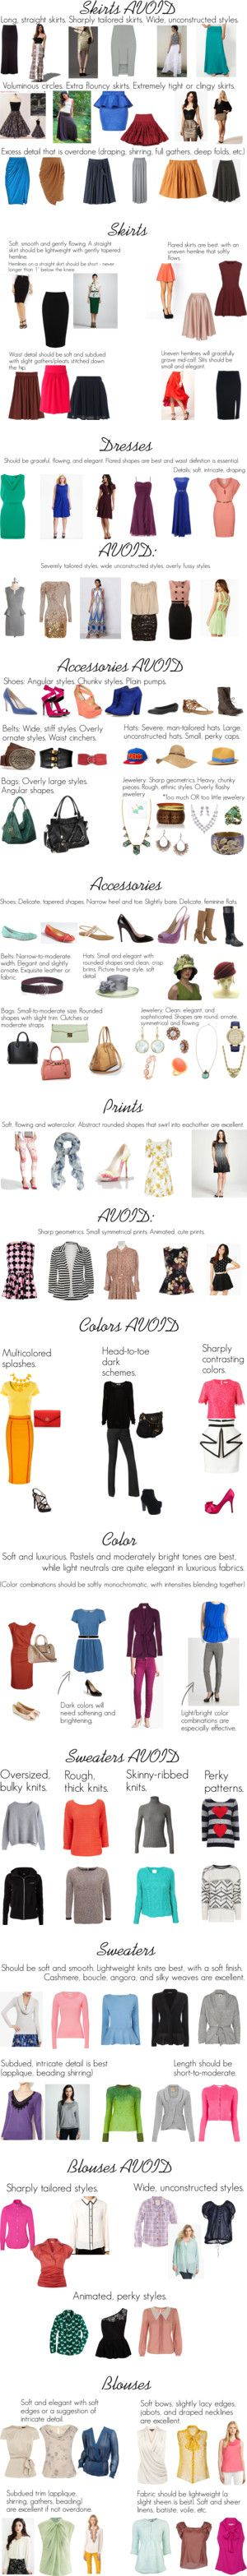 """""""SC Guidelines"""" by oscillate on Polyvore... Great for finding silhouettes that work for al!"""